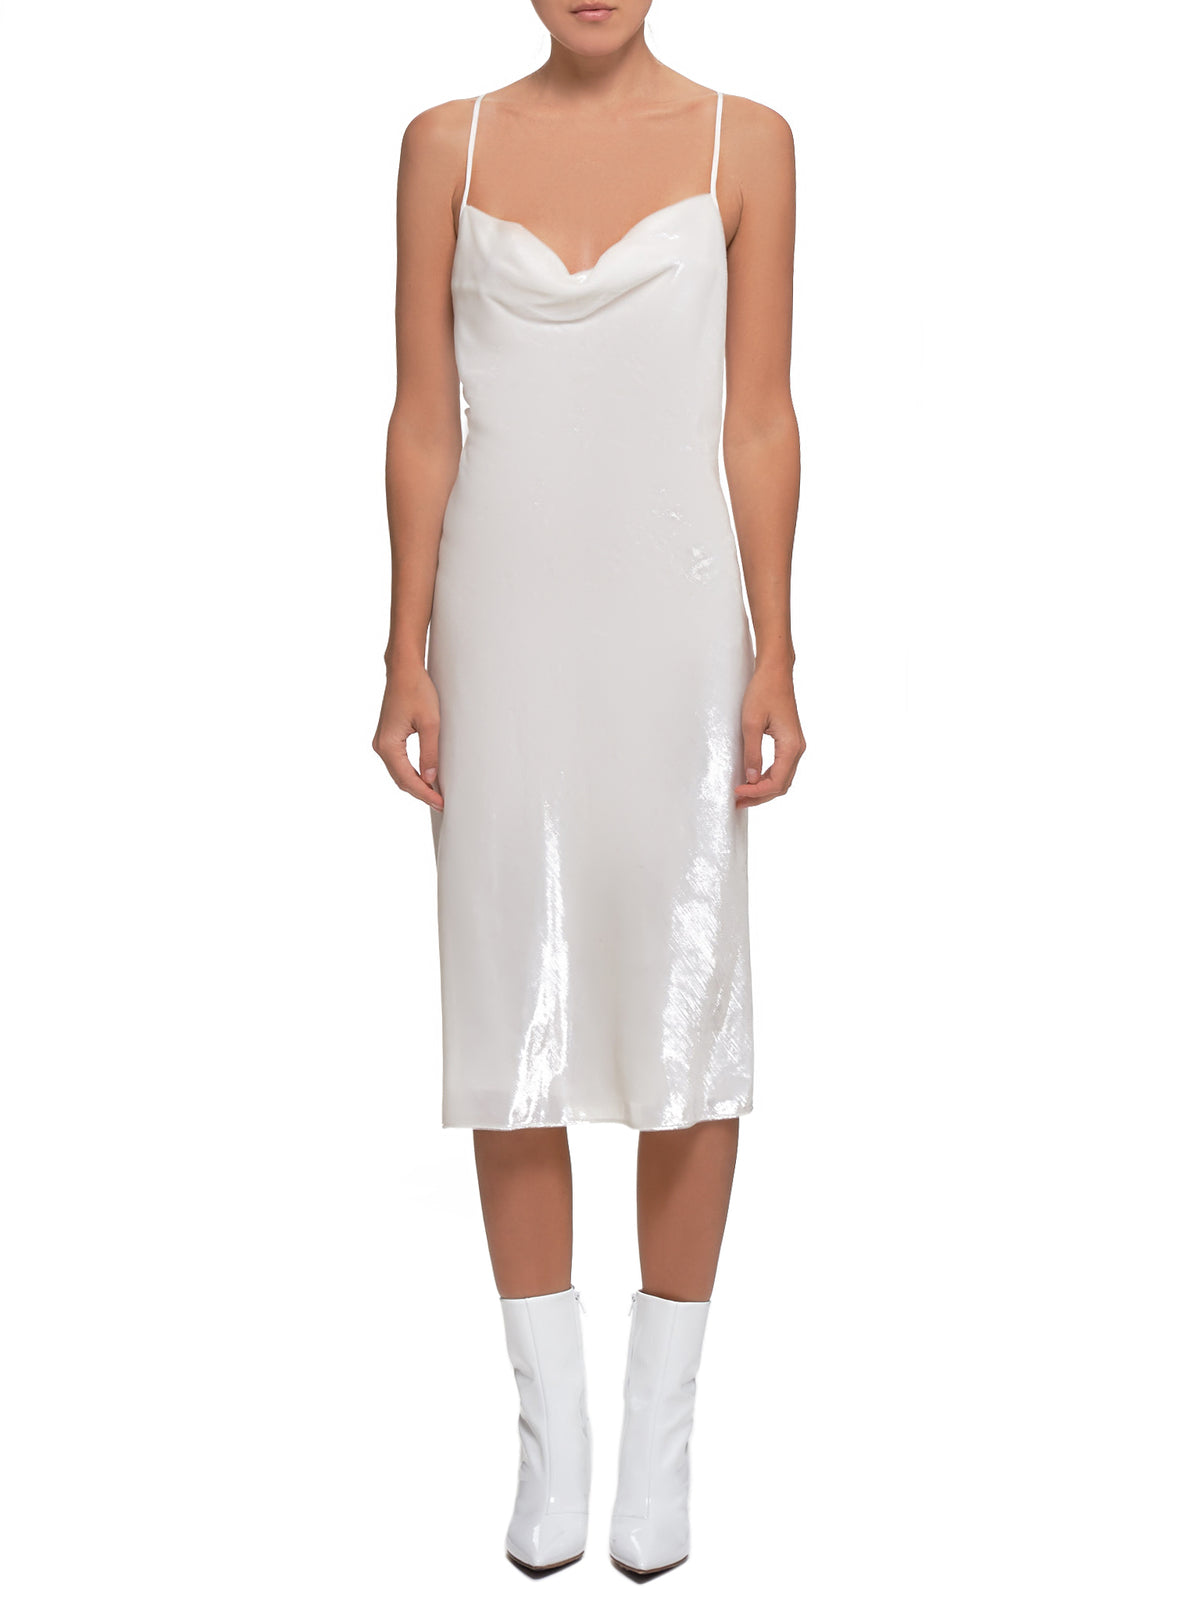 Velvet Slip Dress (#003066-#021-WHITE)